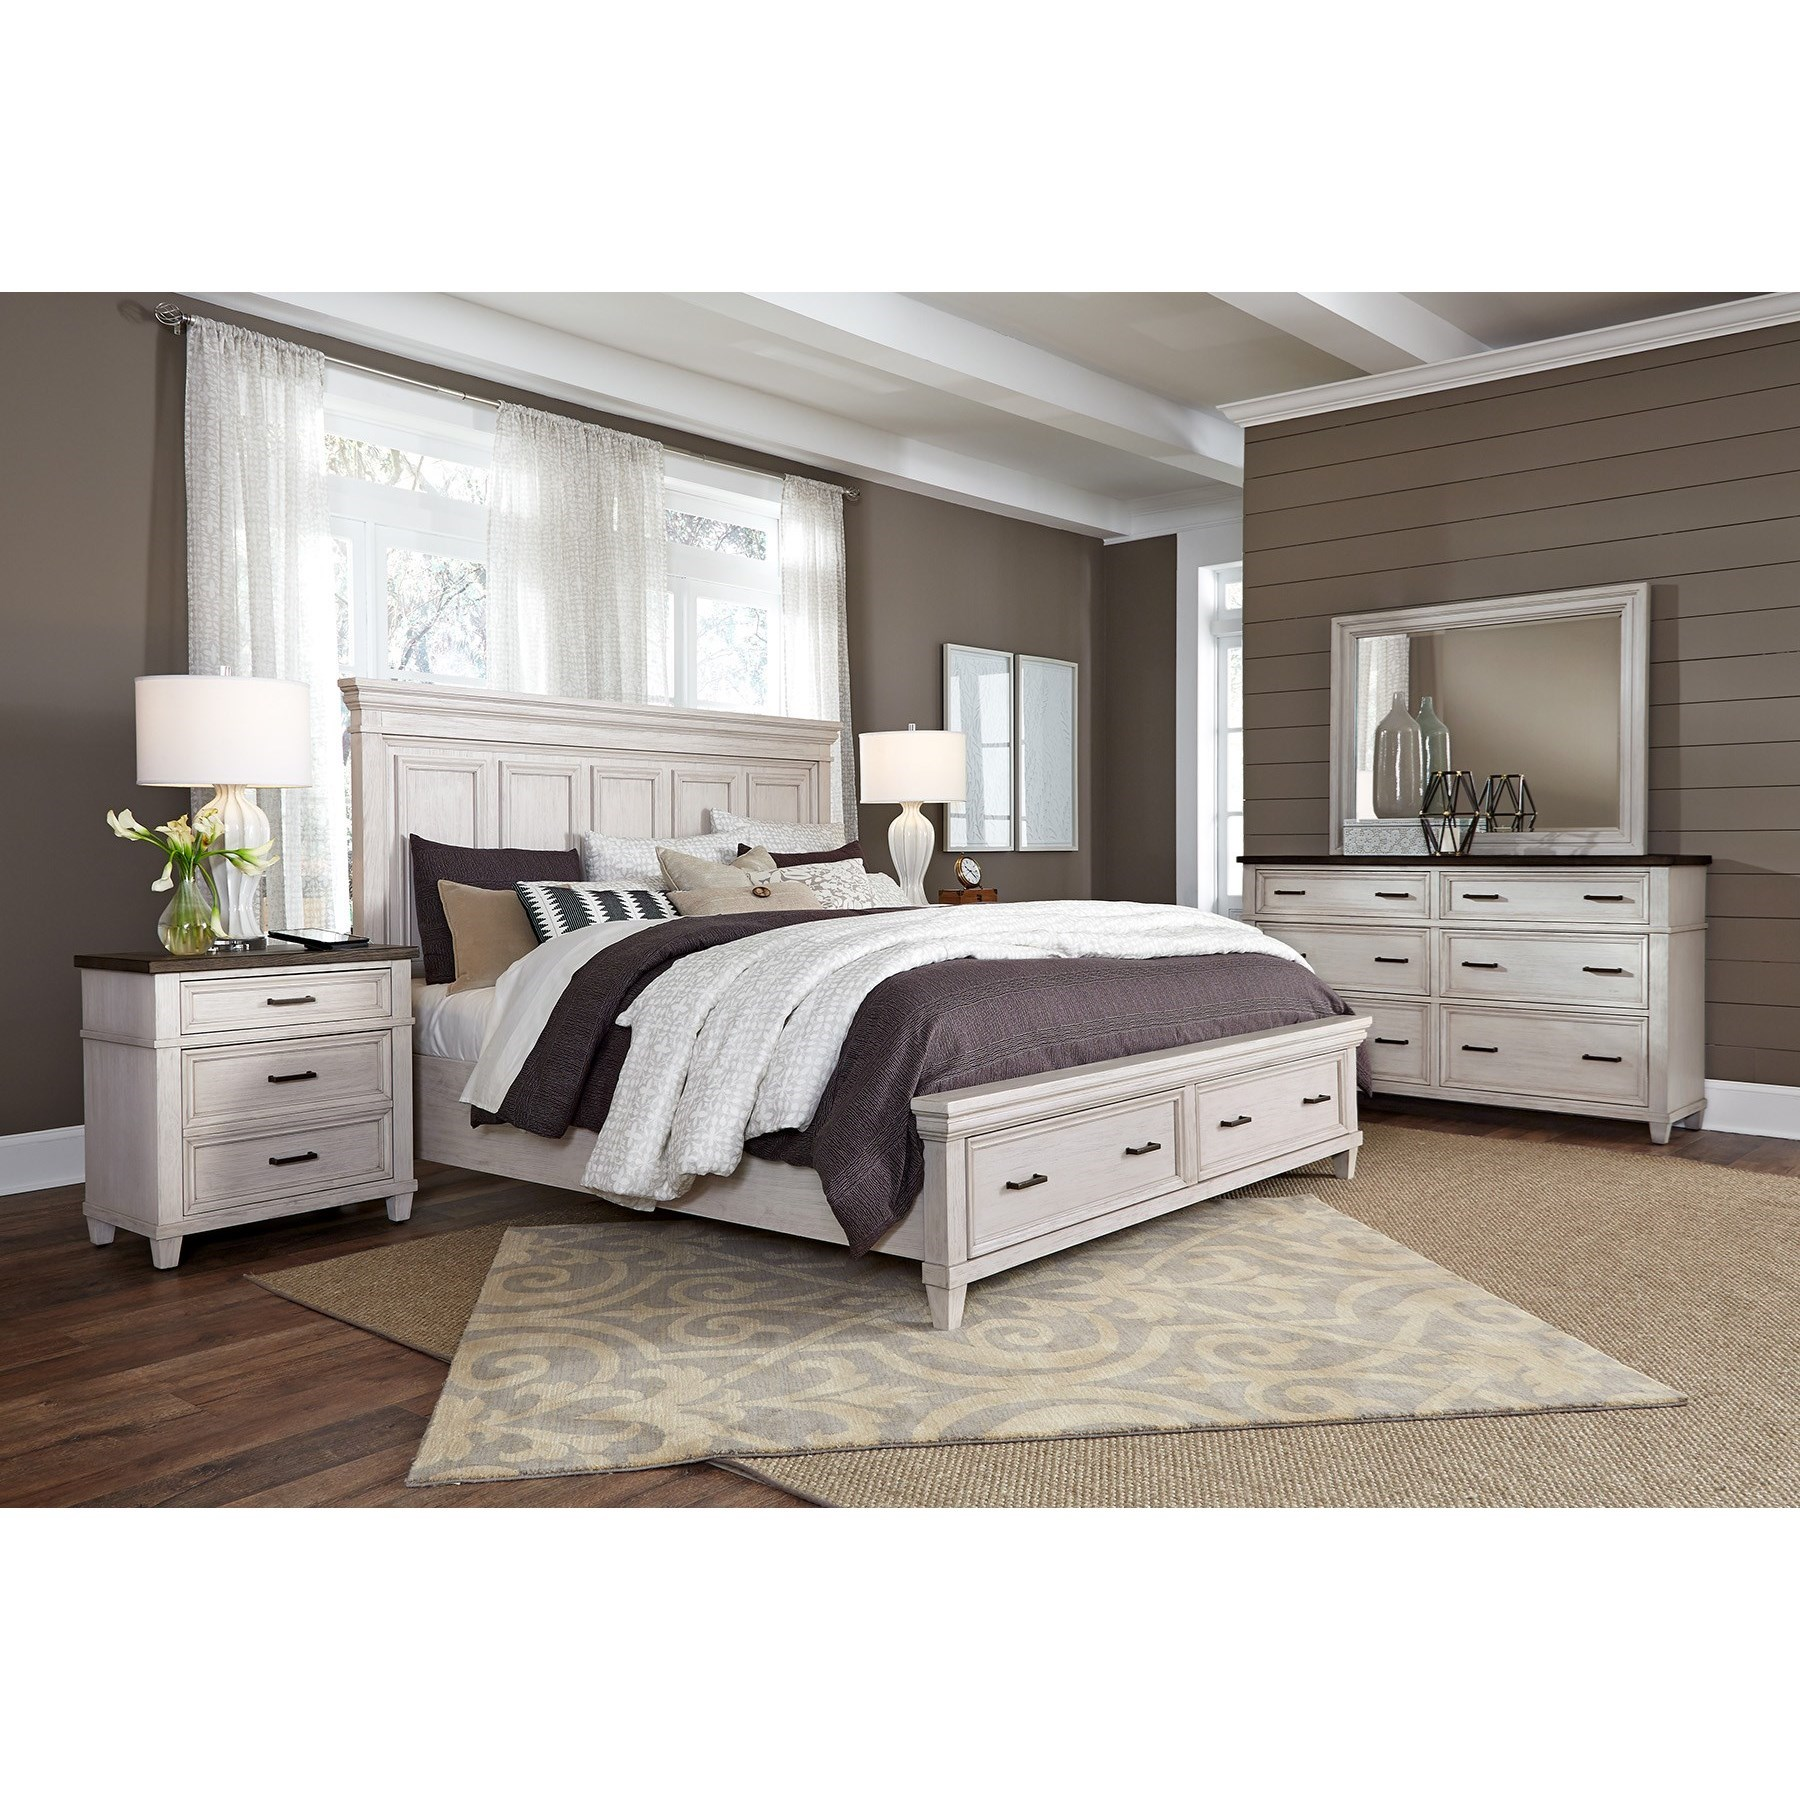 Caraway King Bedroom Group by Aspenhome at Walker's Furniture